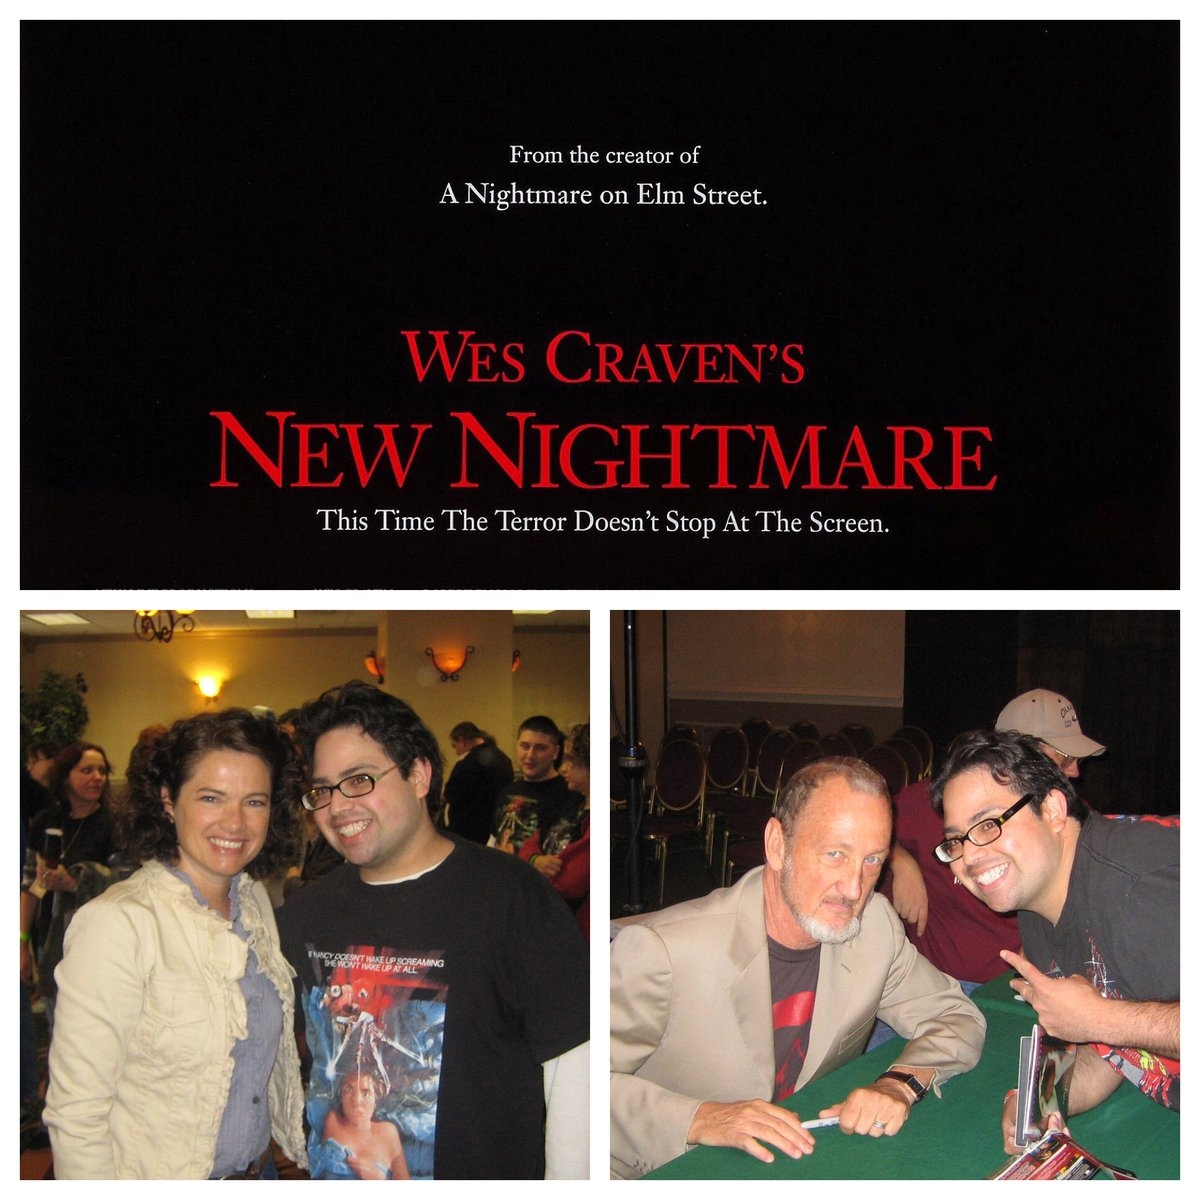 One of the best films in the #NightmareOnElmStreet  franchise premiered 25 years ago today. The 7th film, aptly named Wes Craven's #NewNightmare  was an instant hit & classic w/ fans & critics alike and blurred the lines b/w fiction & reality. #WesCravensNewNightmare  @LangenkampH